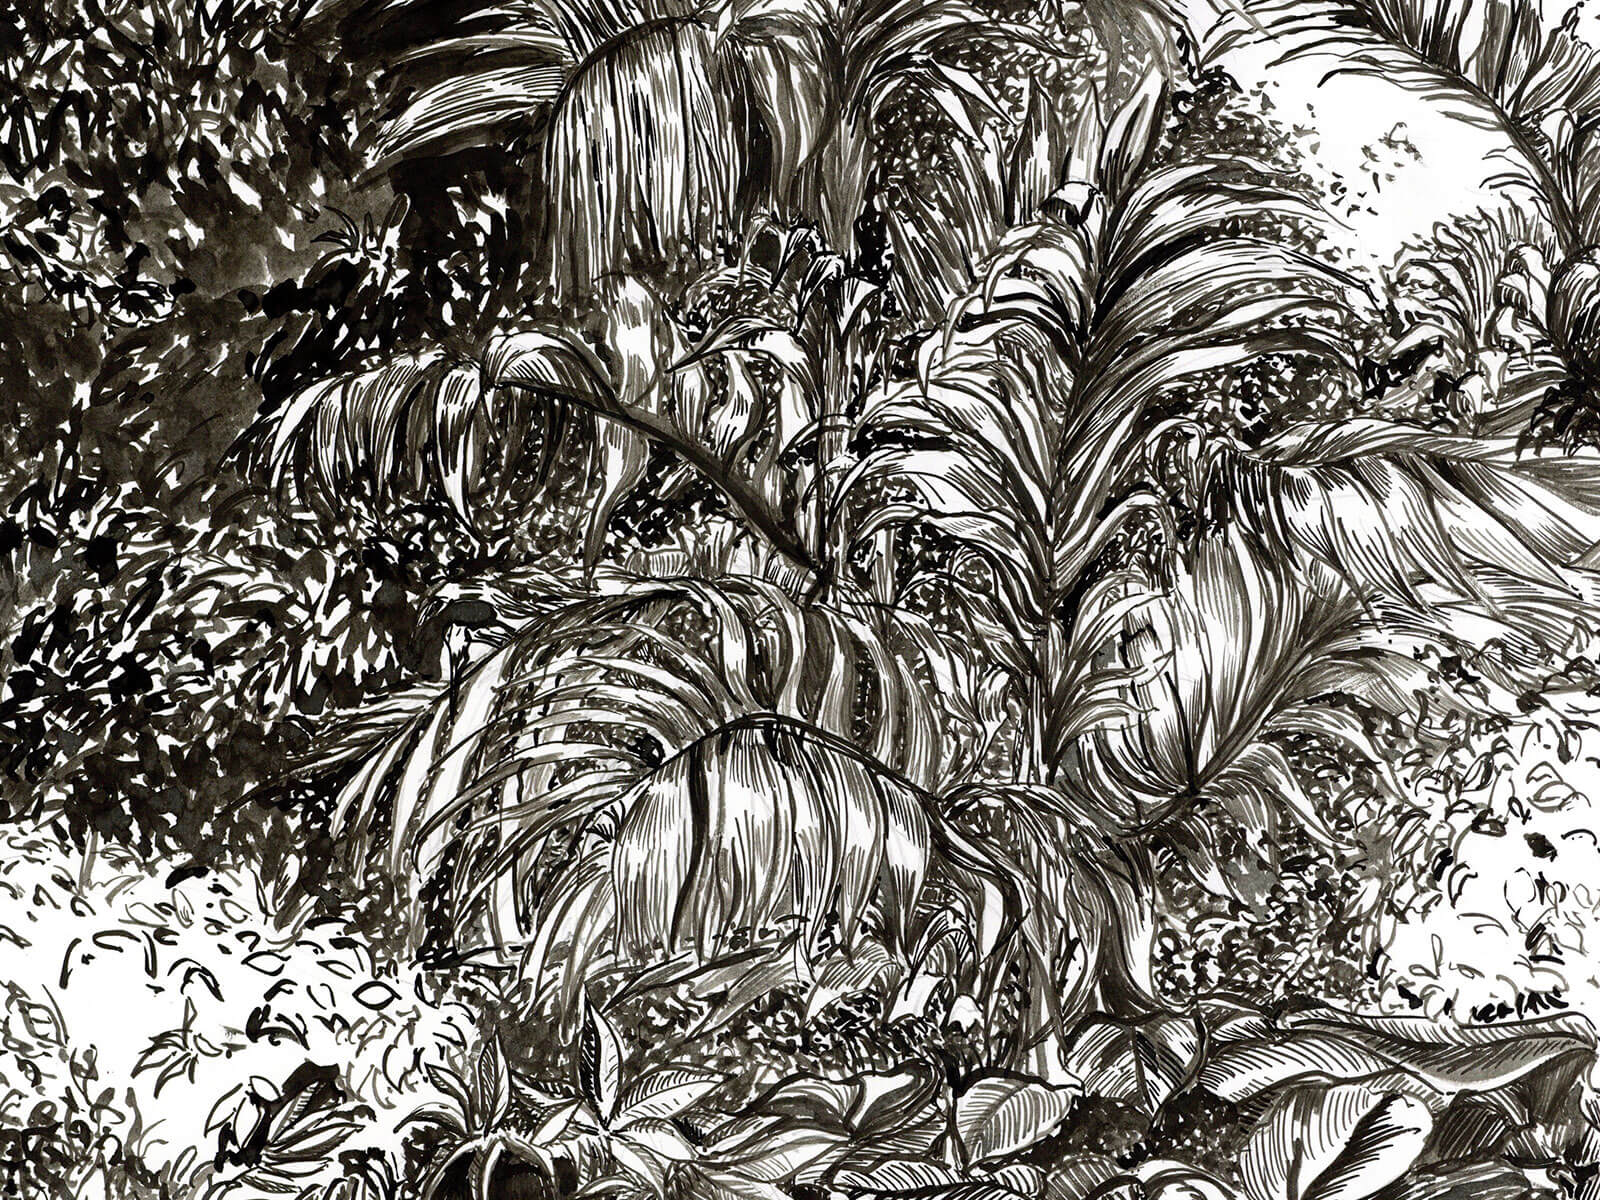 Black-and-white sketch of a fern in a jungle.